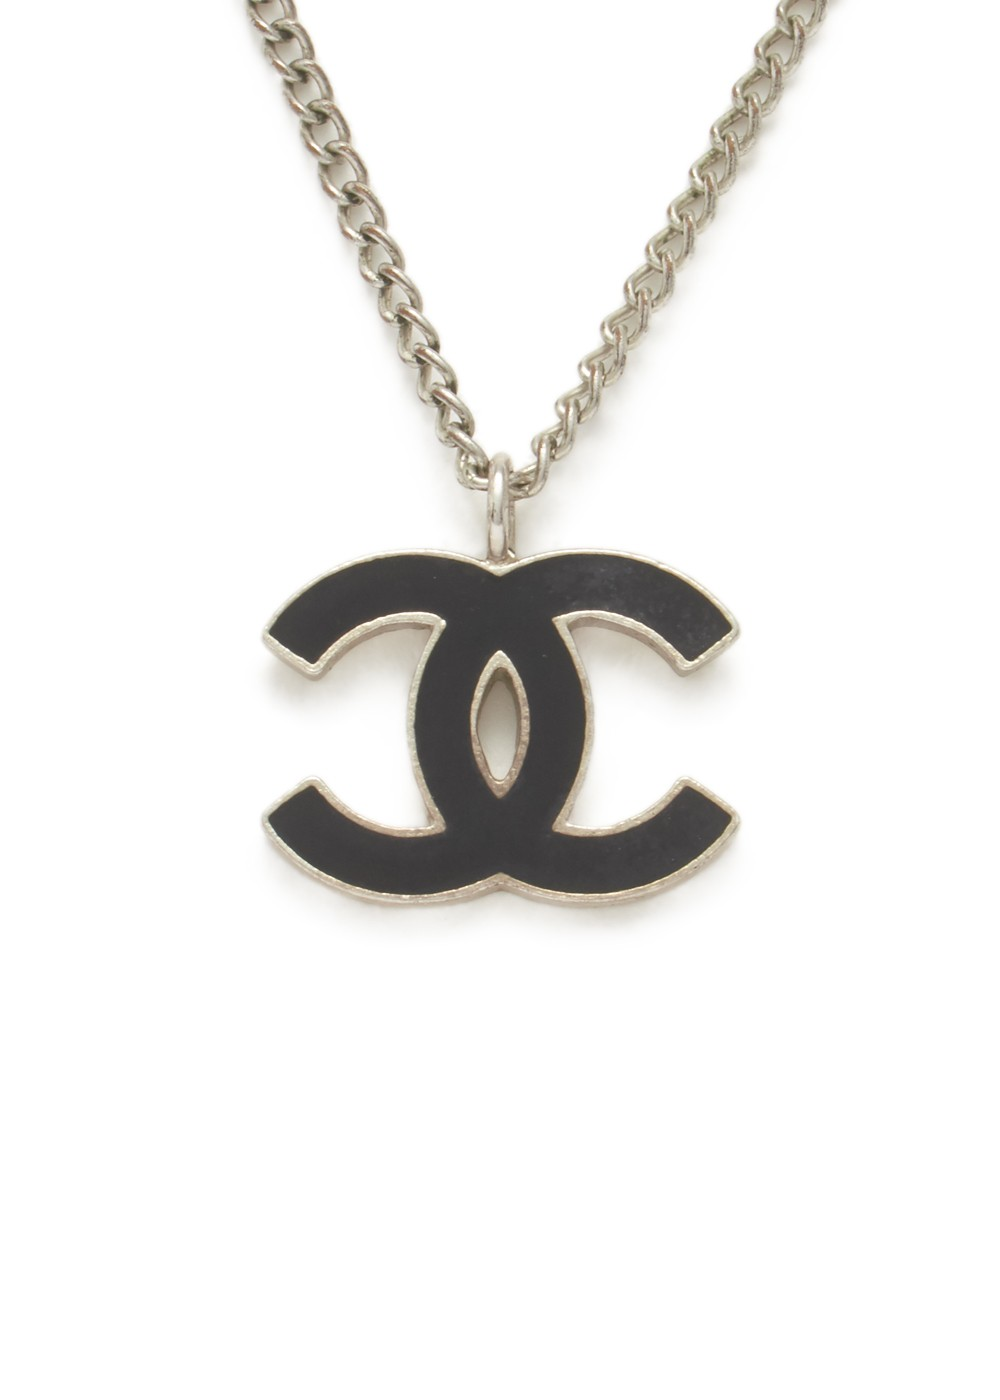 CHANEL ココネックレス  04P|OTHER|ネックレス|VINTAGE BRAND COLLECTION_(I)